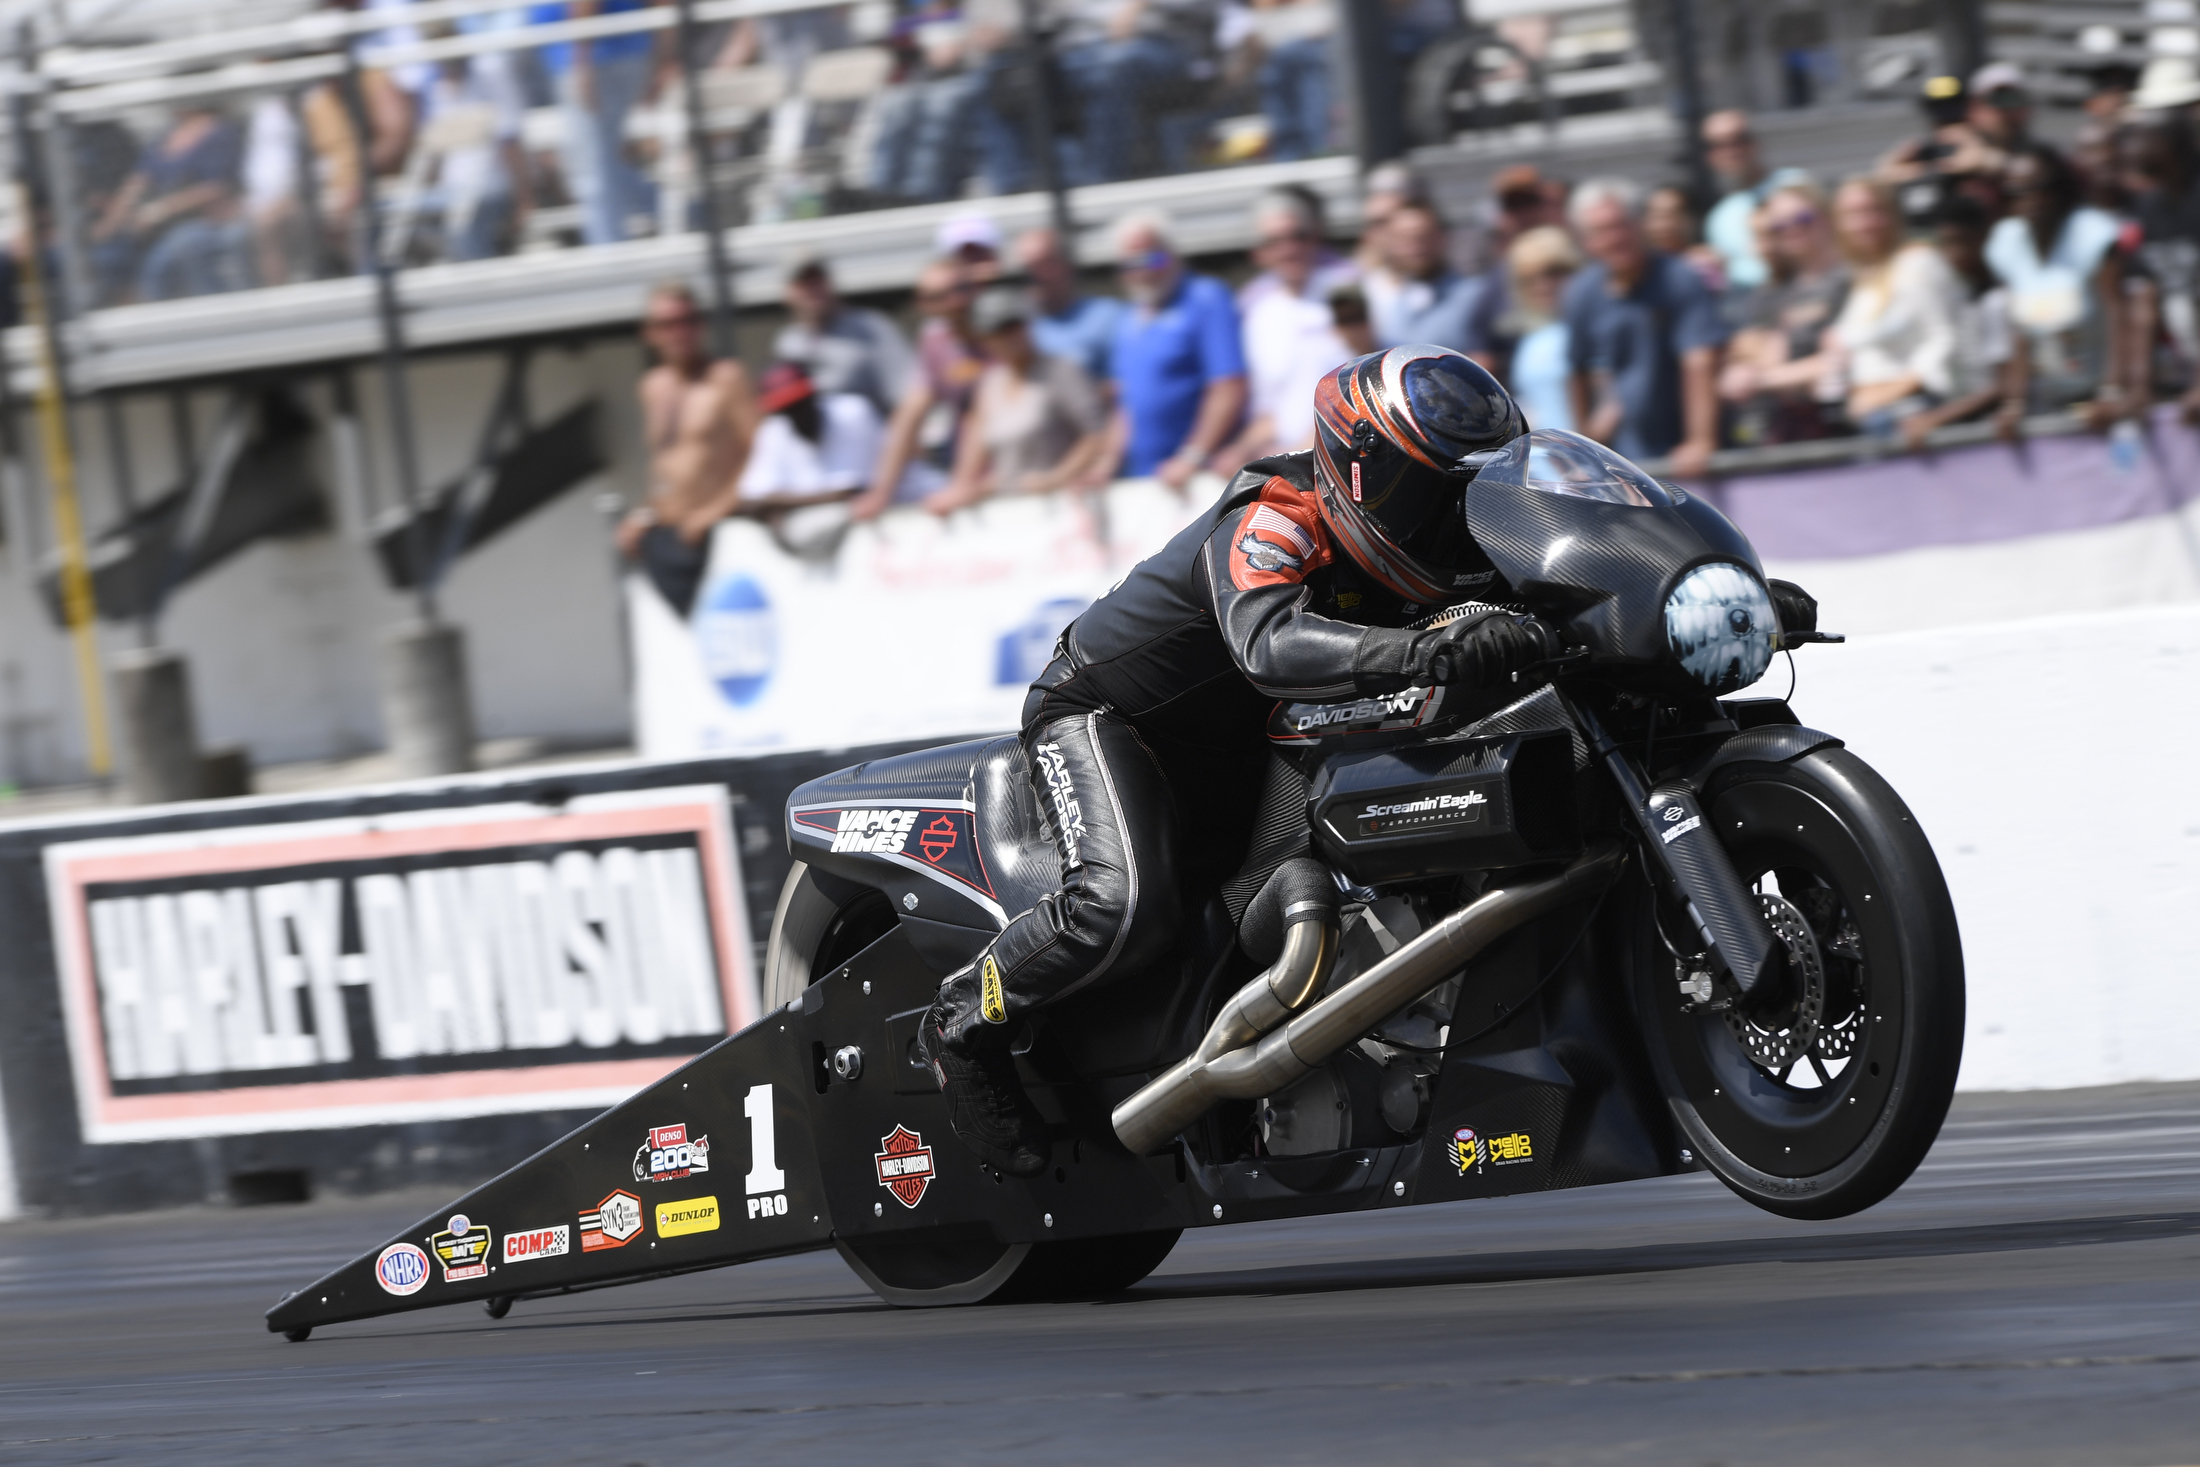 NHRA Pro Stock Motorcycle Eddie Krawiec - Sunday - Gainesville - Gatornationals